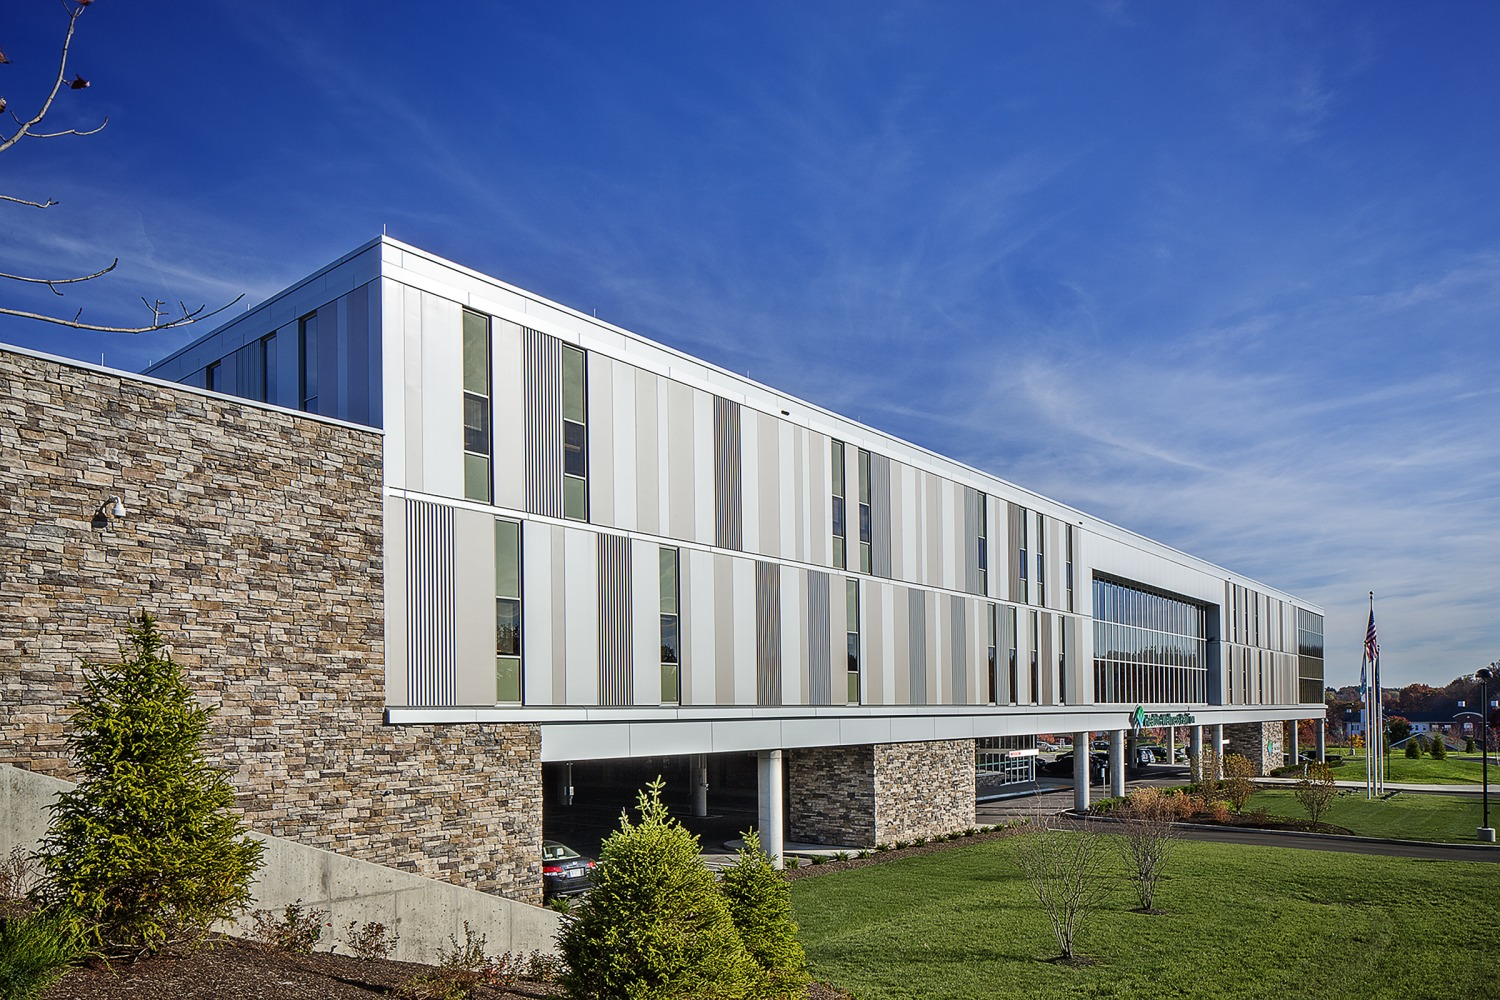 Allegheny Health Network, Wexford Health & Wellness Pavilion